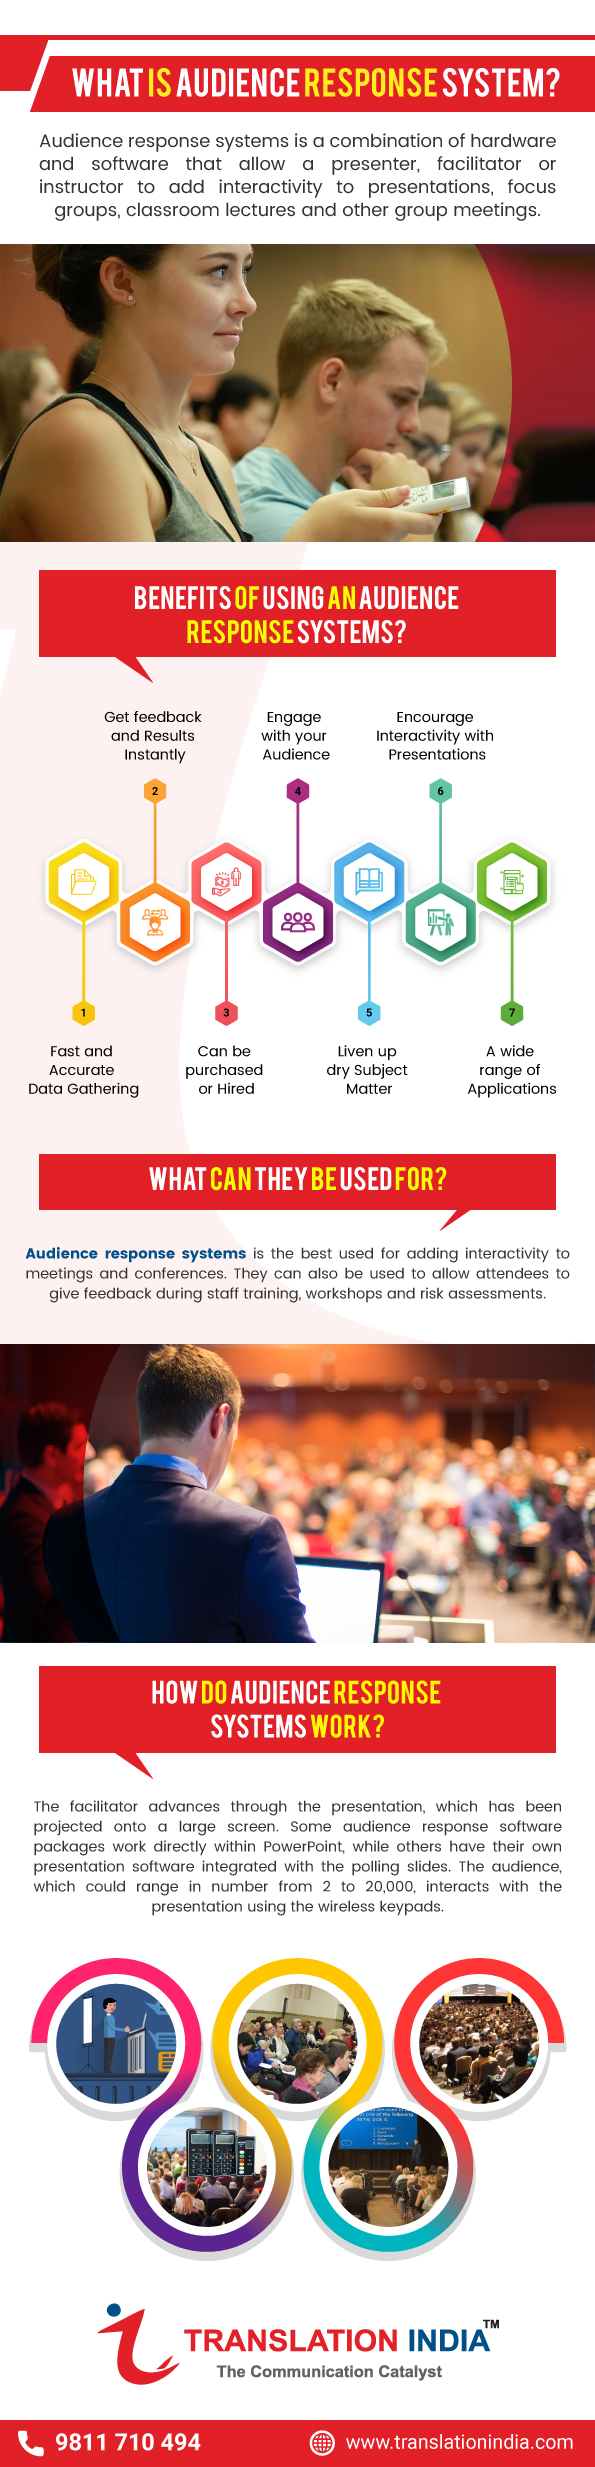 what is audience response system